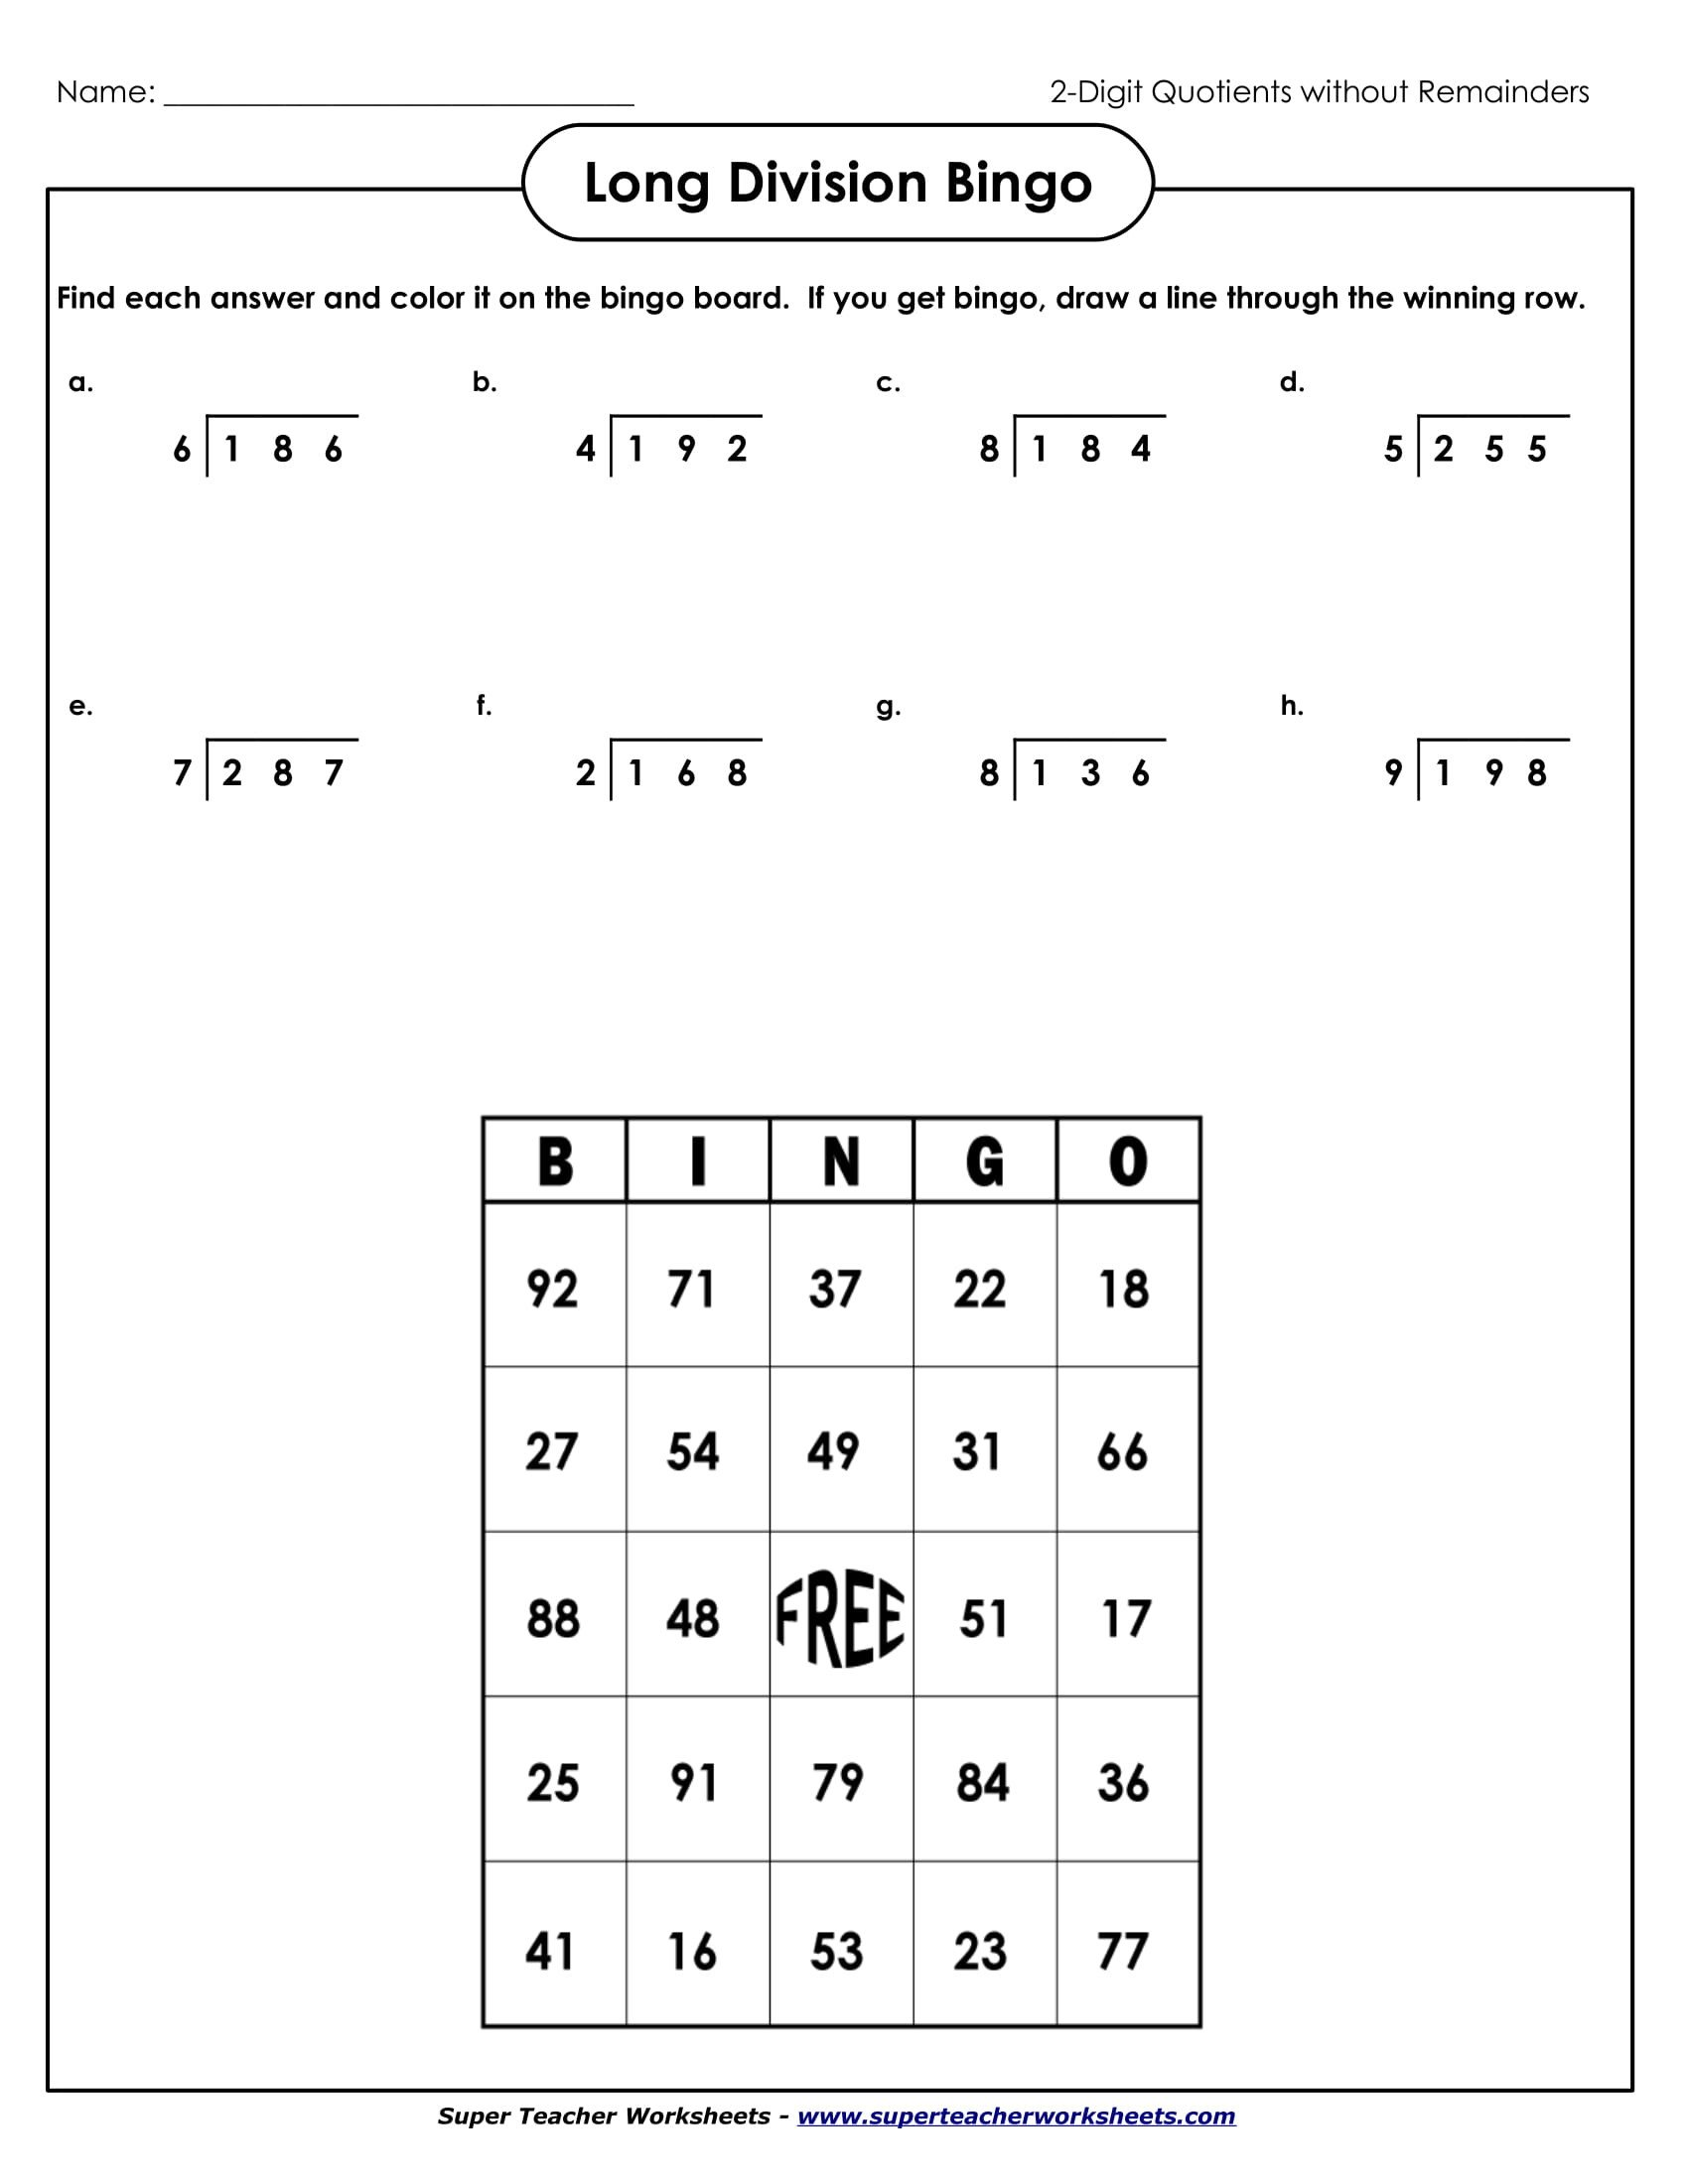 Super Teacher Worksheets Long Division 9 Math Worksheets for Students Pdf